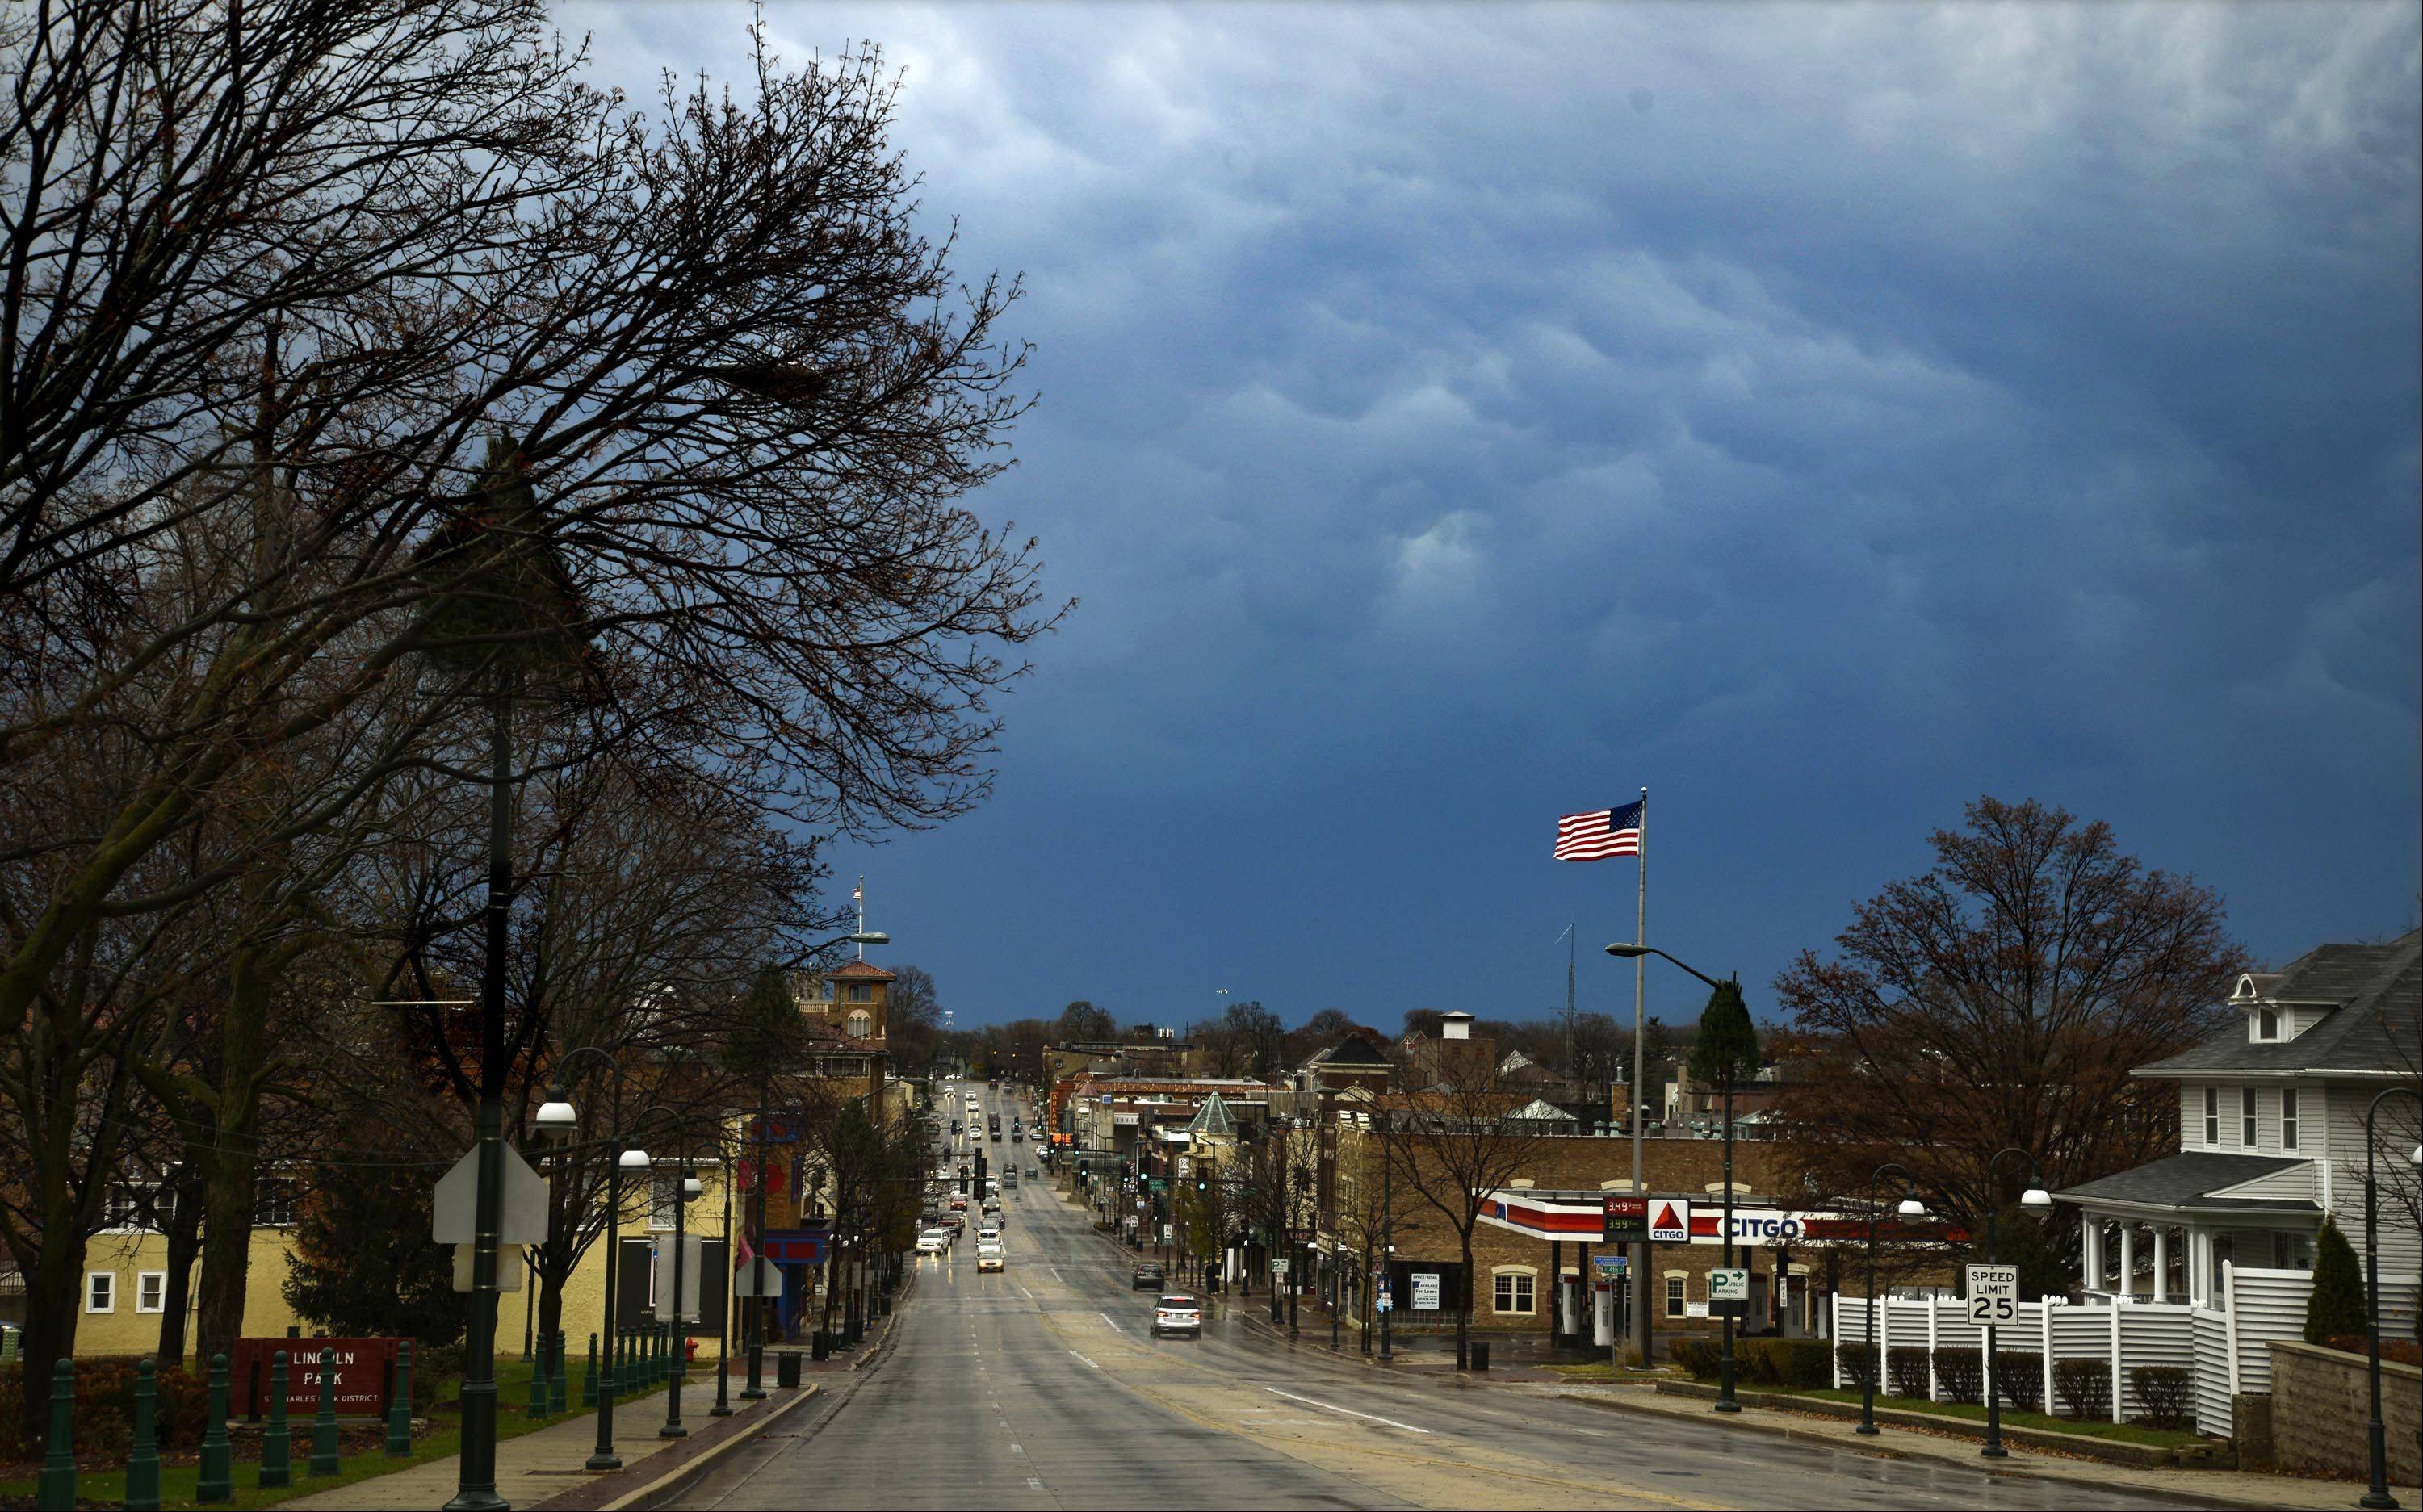 The eastern sky turns a cloudy blue over St. Charles Sunday afternoon.